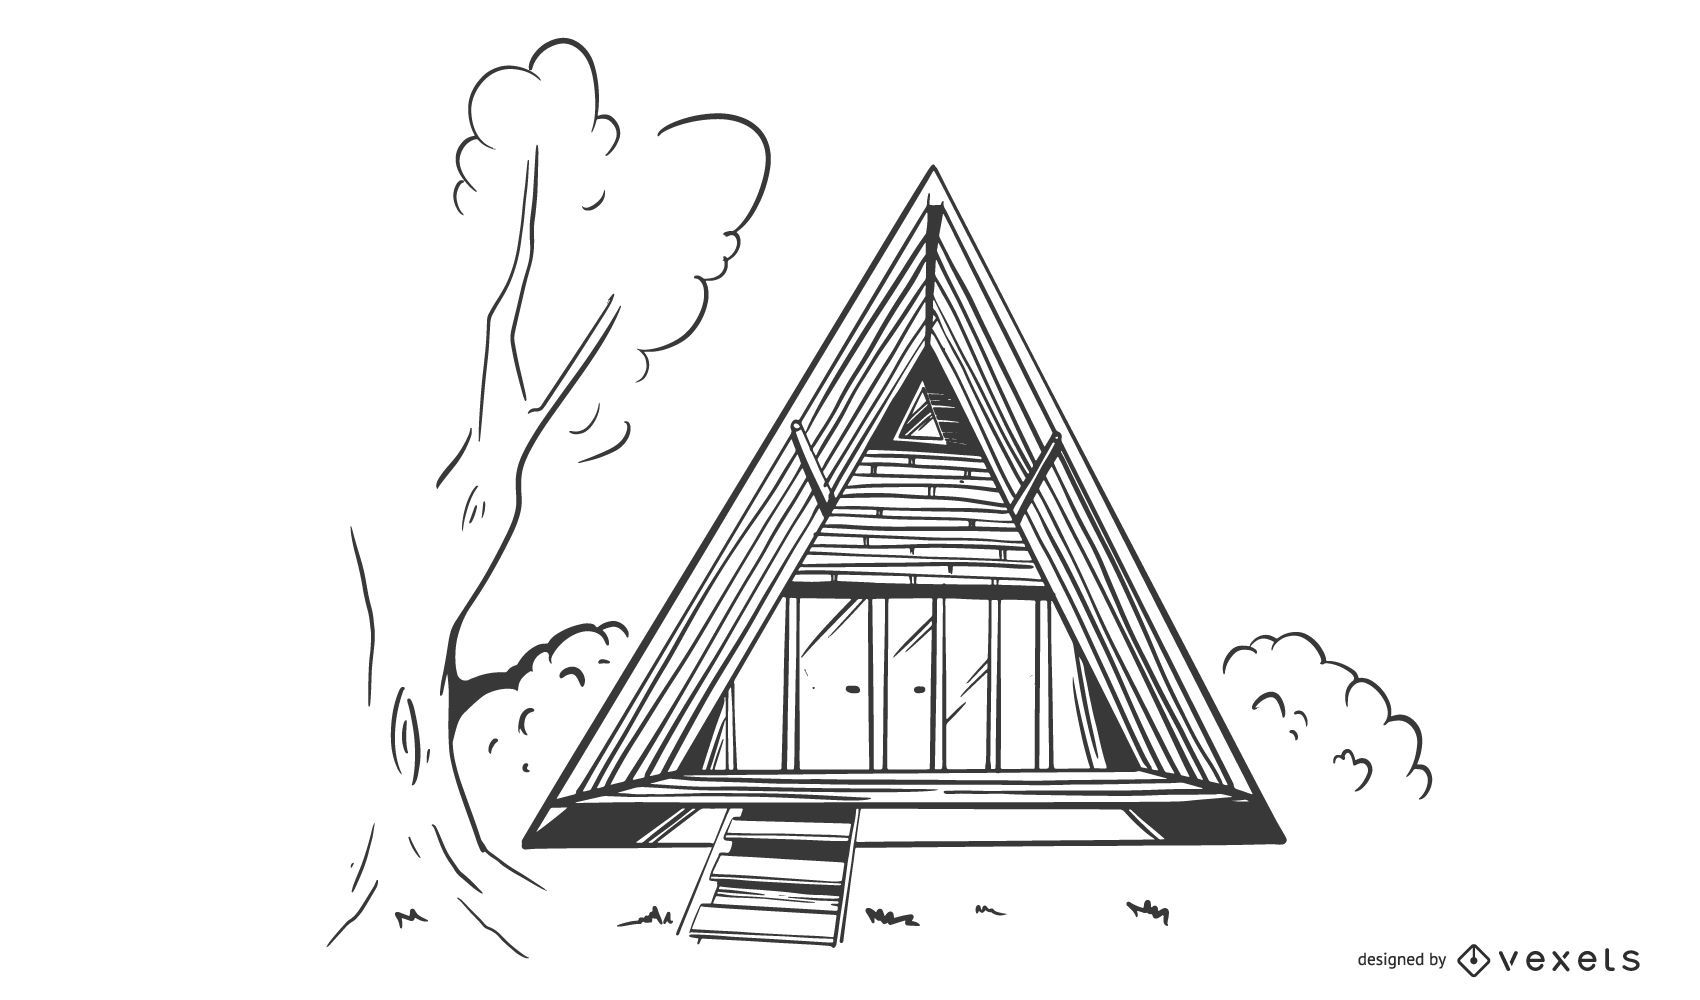 Bamboo Triangle House Building Design